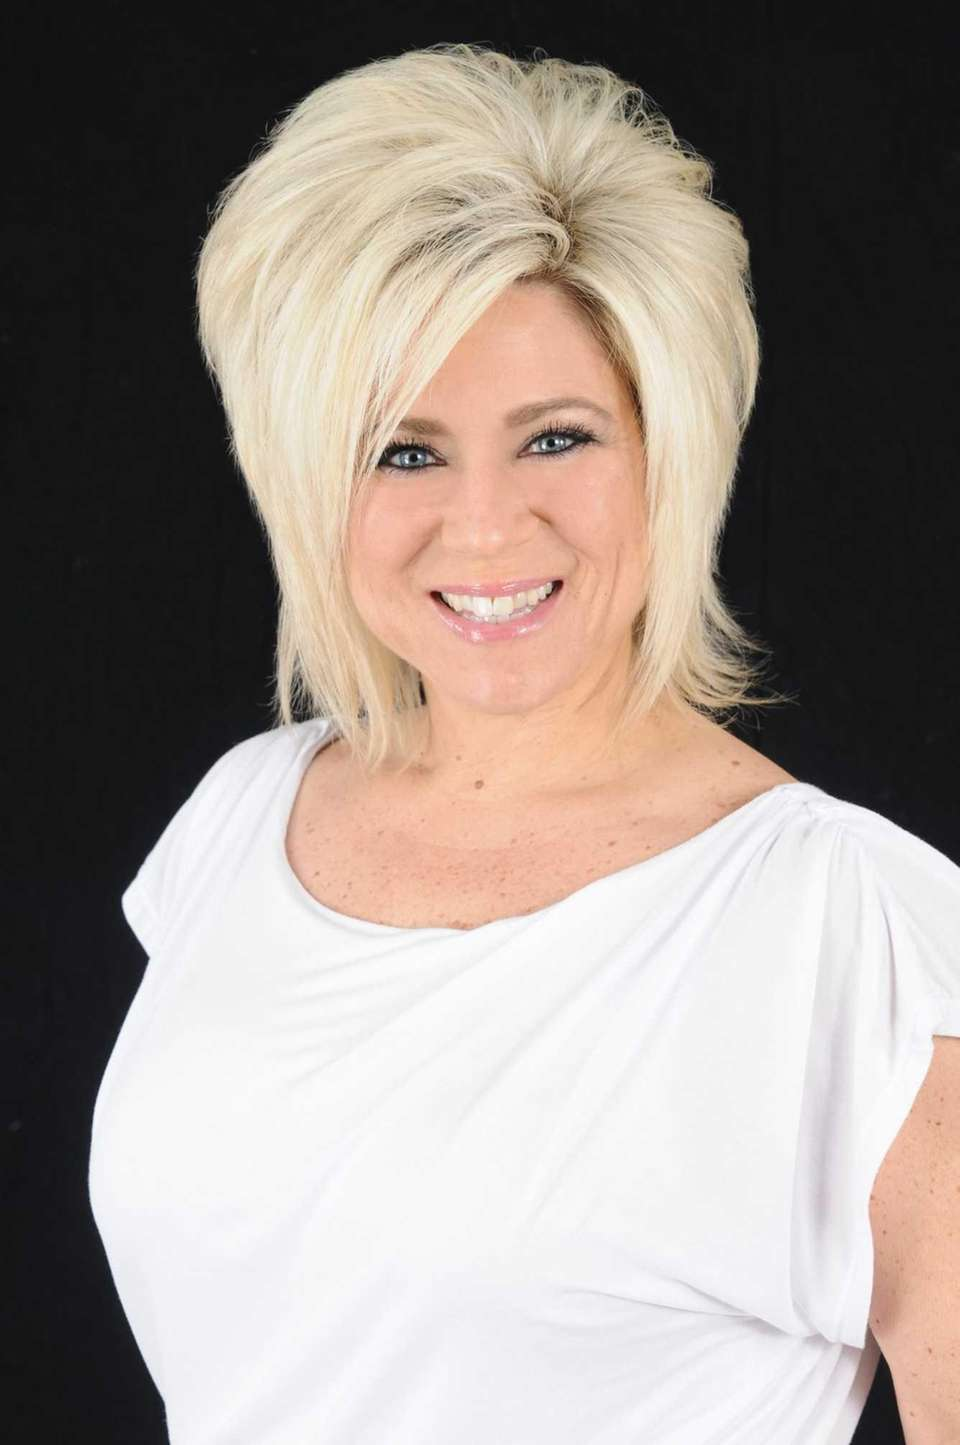 Theresa Caputo, who was born and raised in